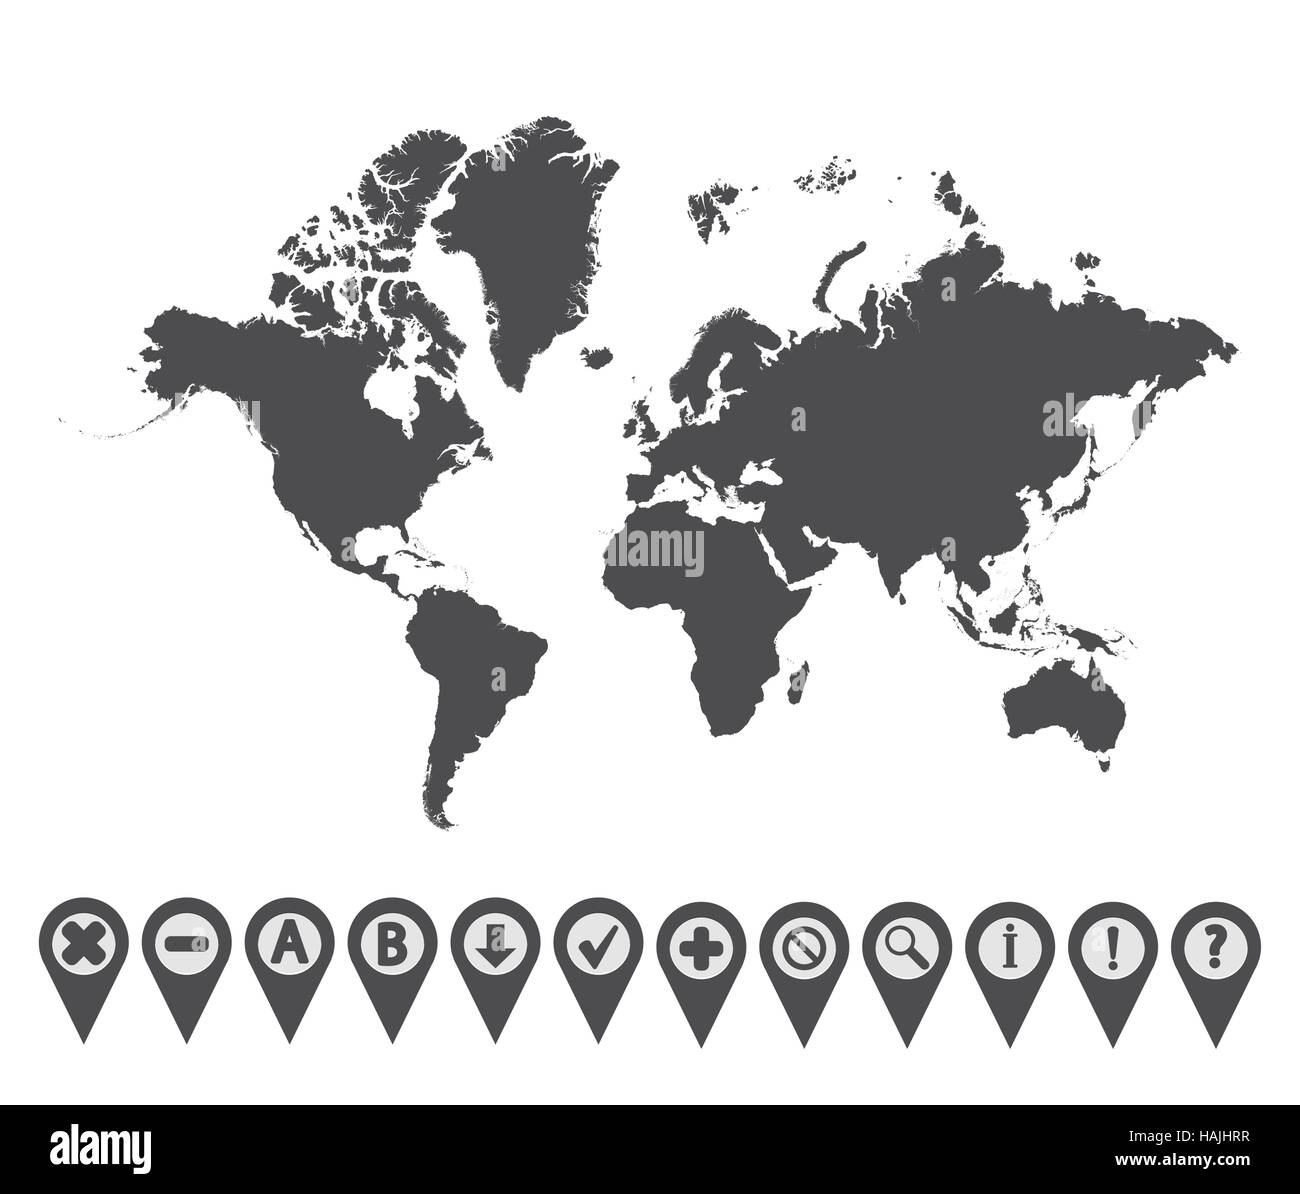 Map with Navigation Icons. Vol. 1. Vector illustration. - Stock Image